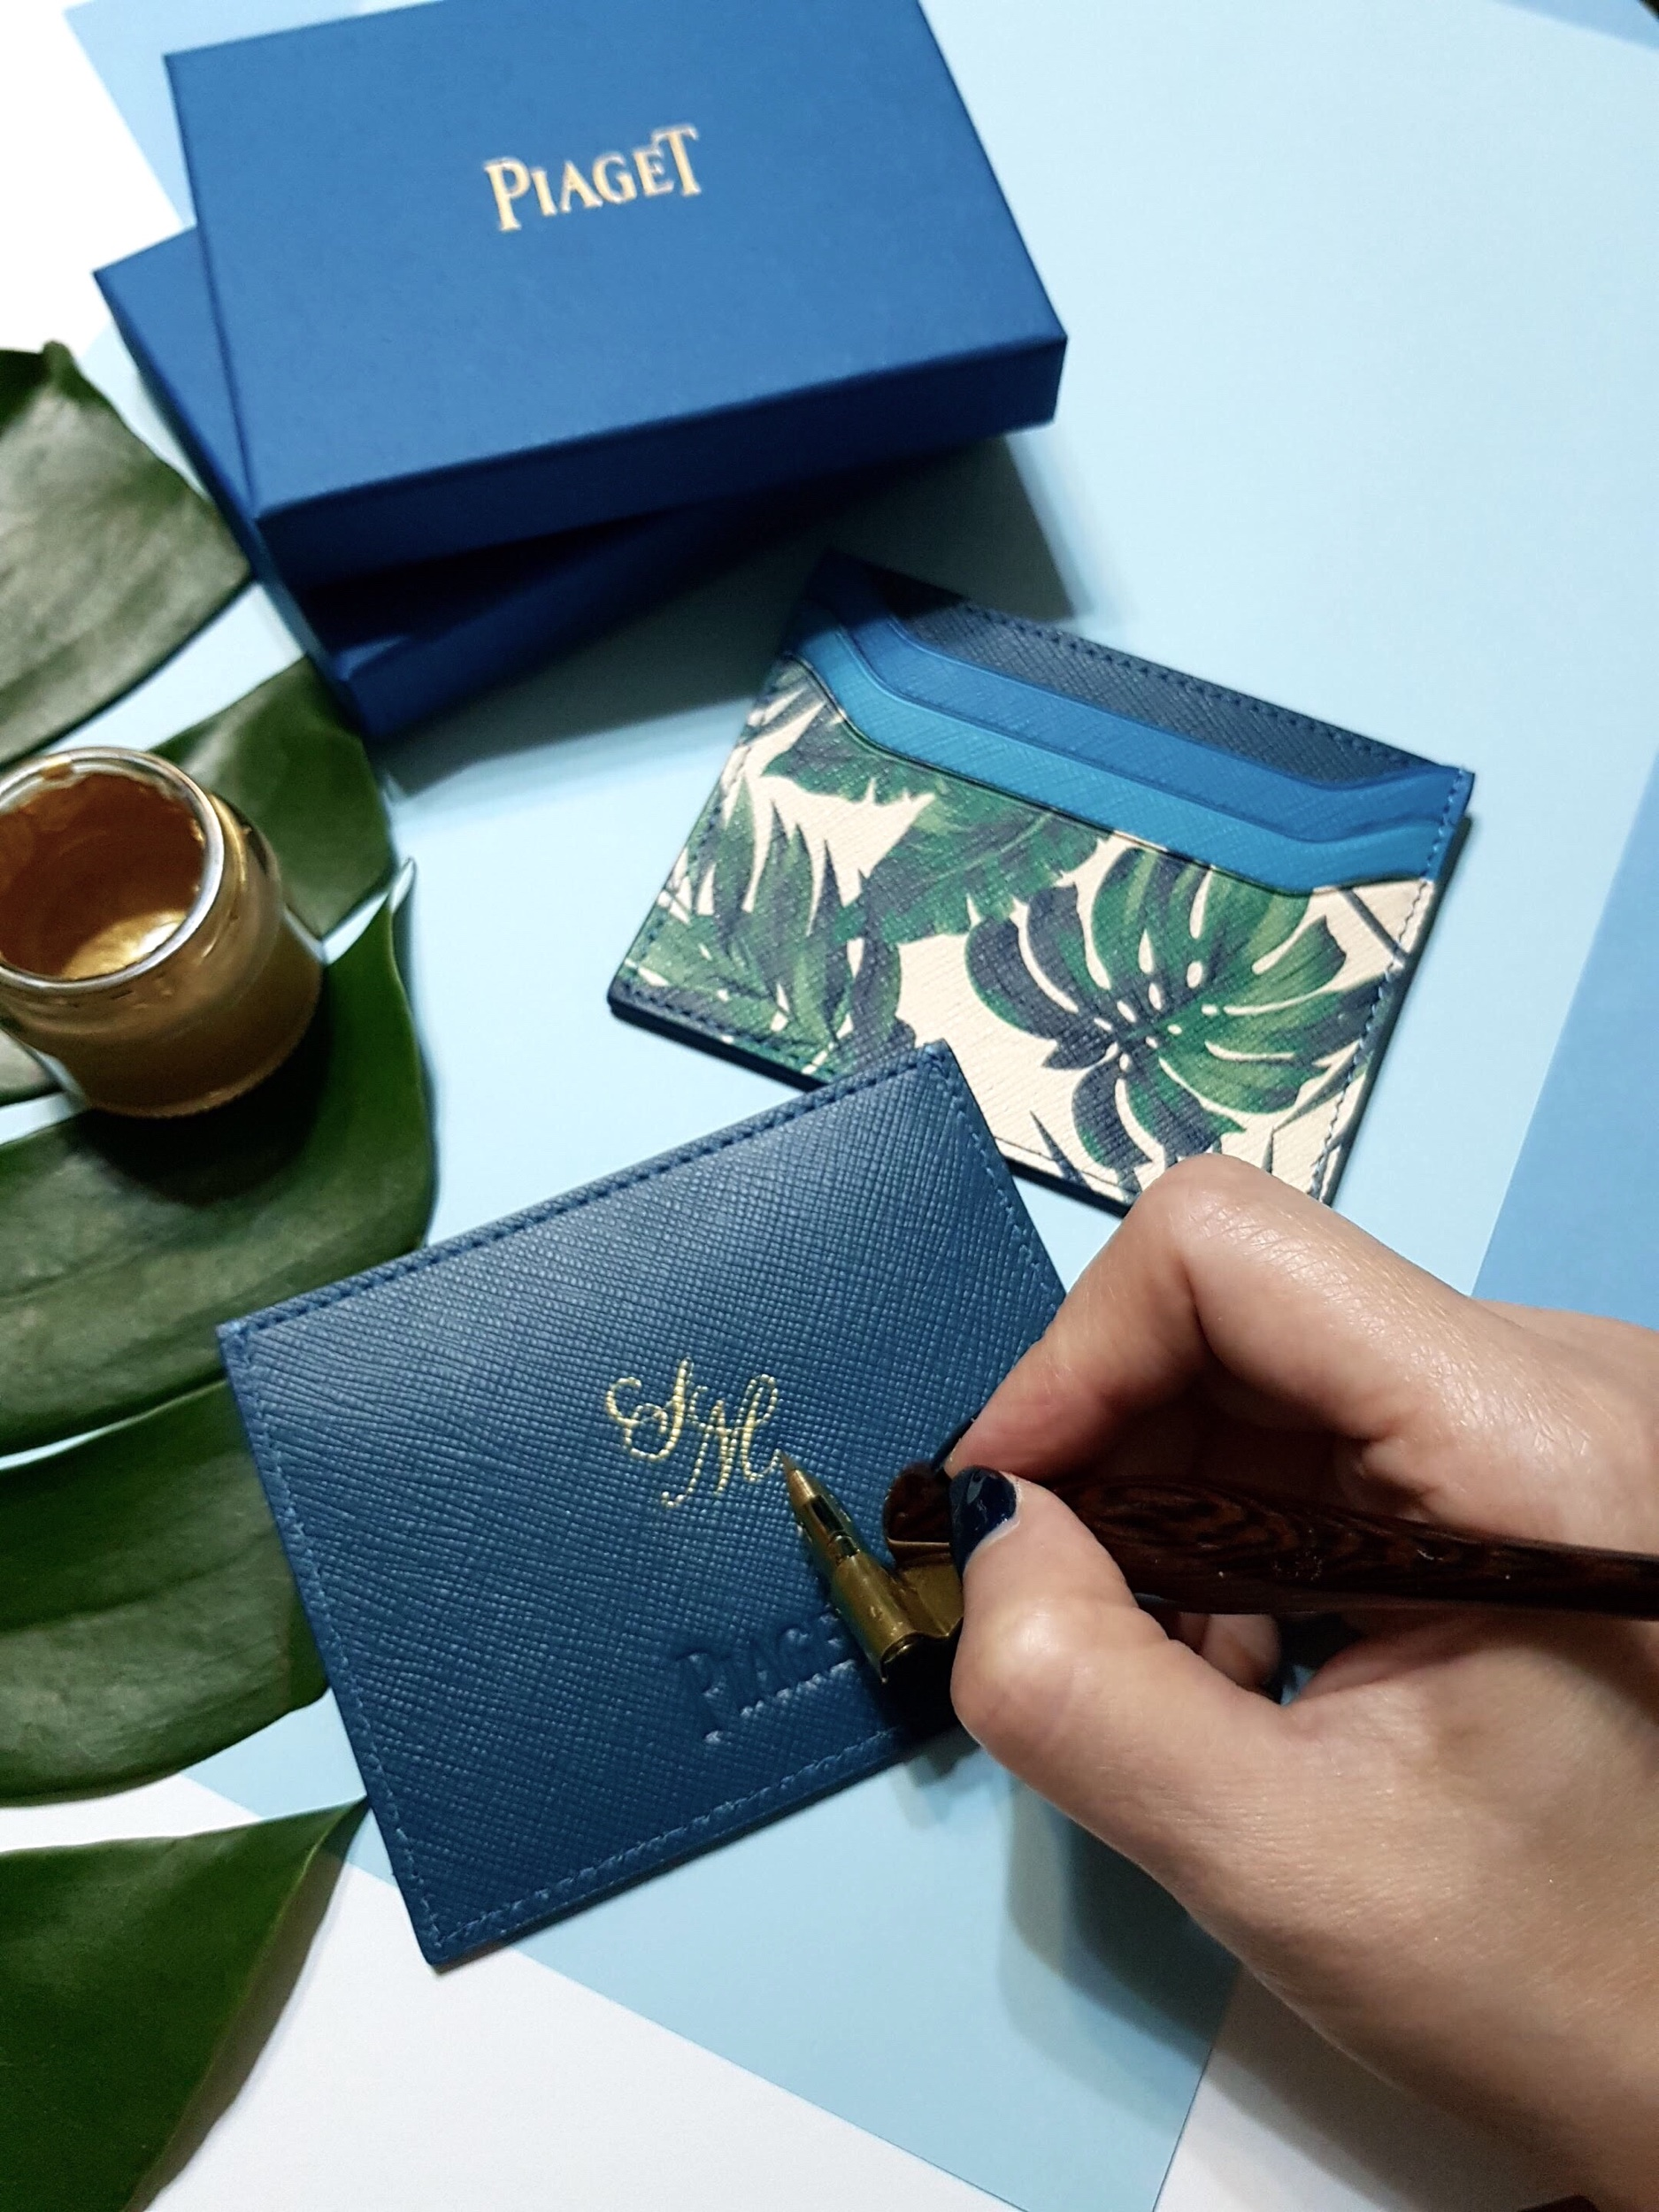 Calligraphy on Leather Namecard Holders for Piaget